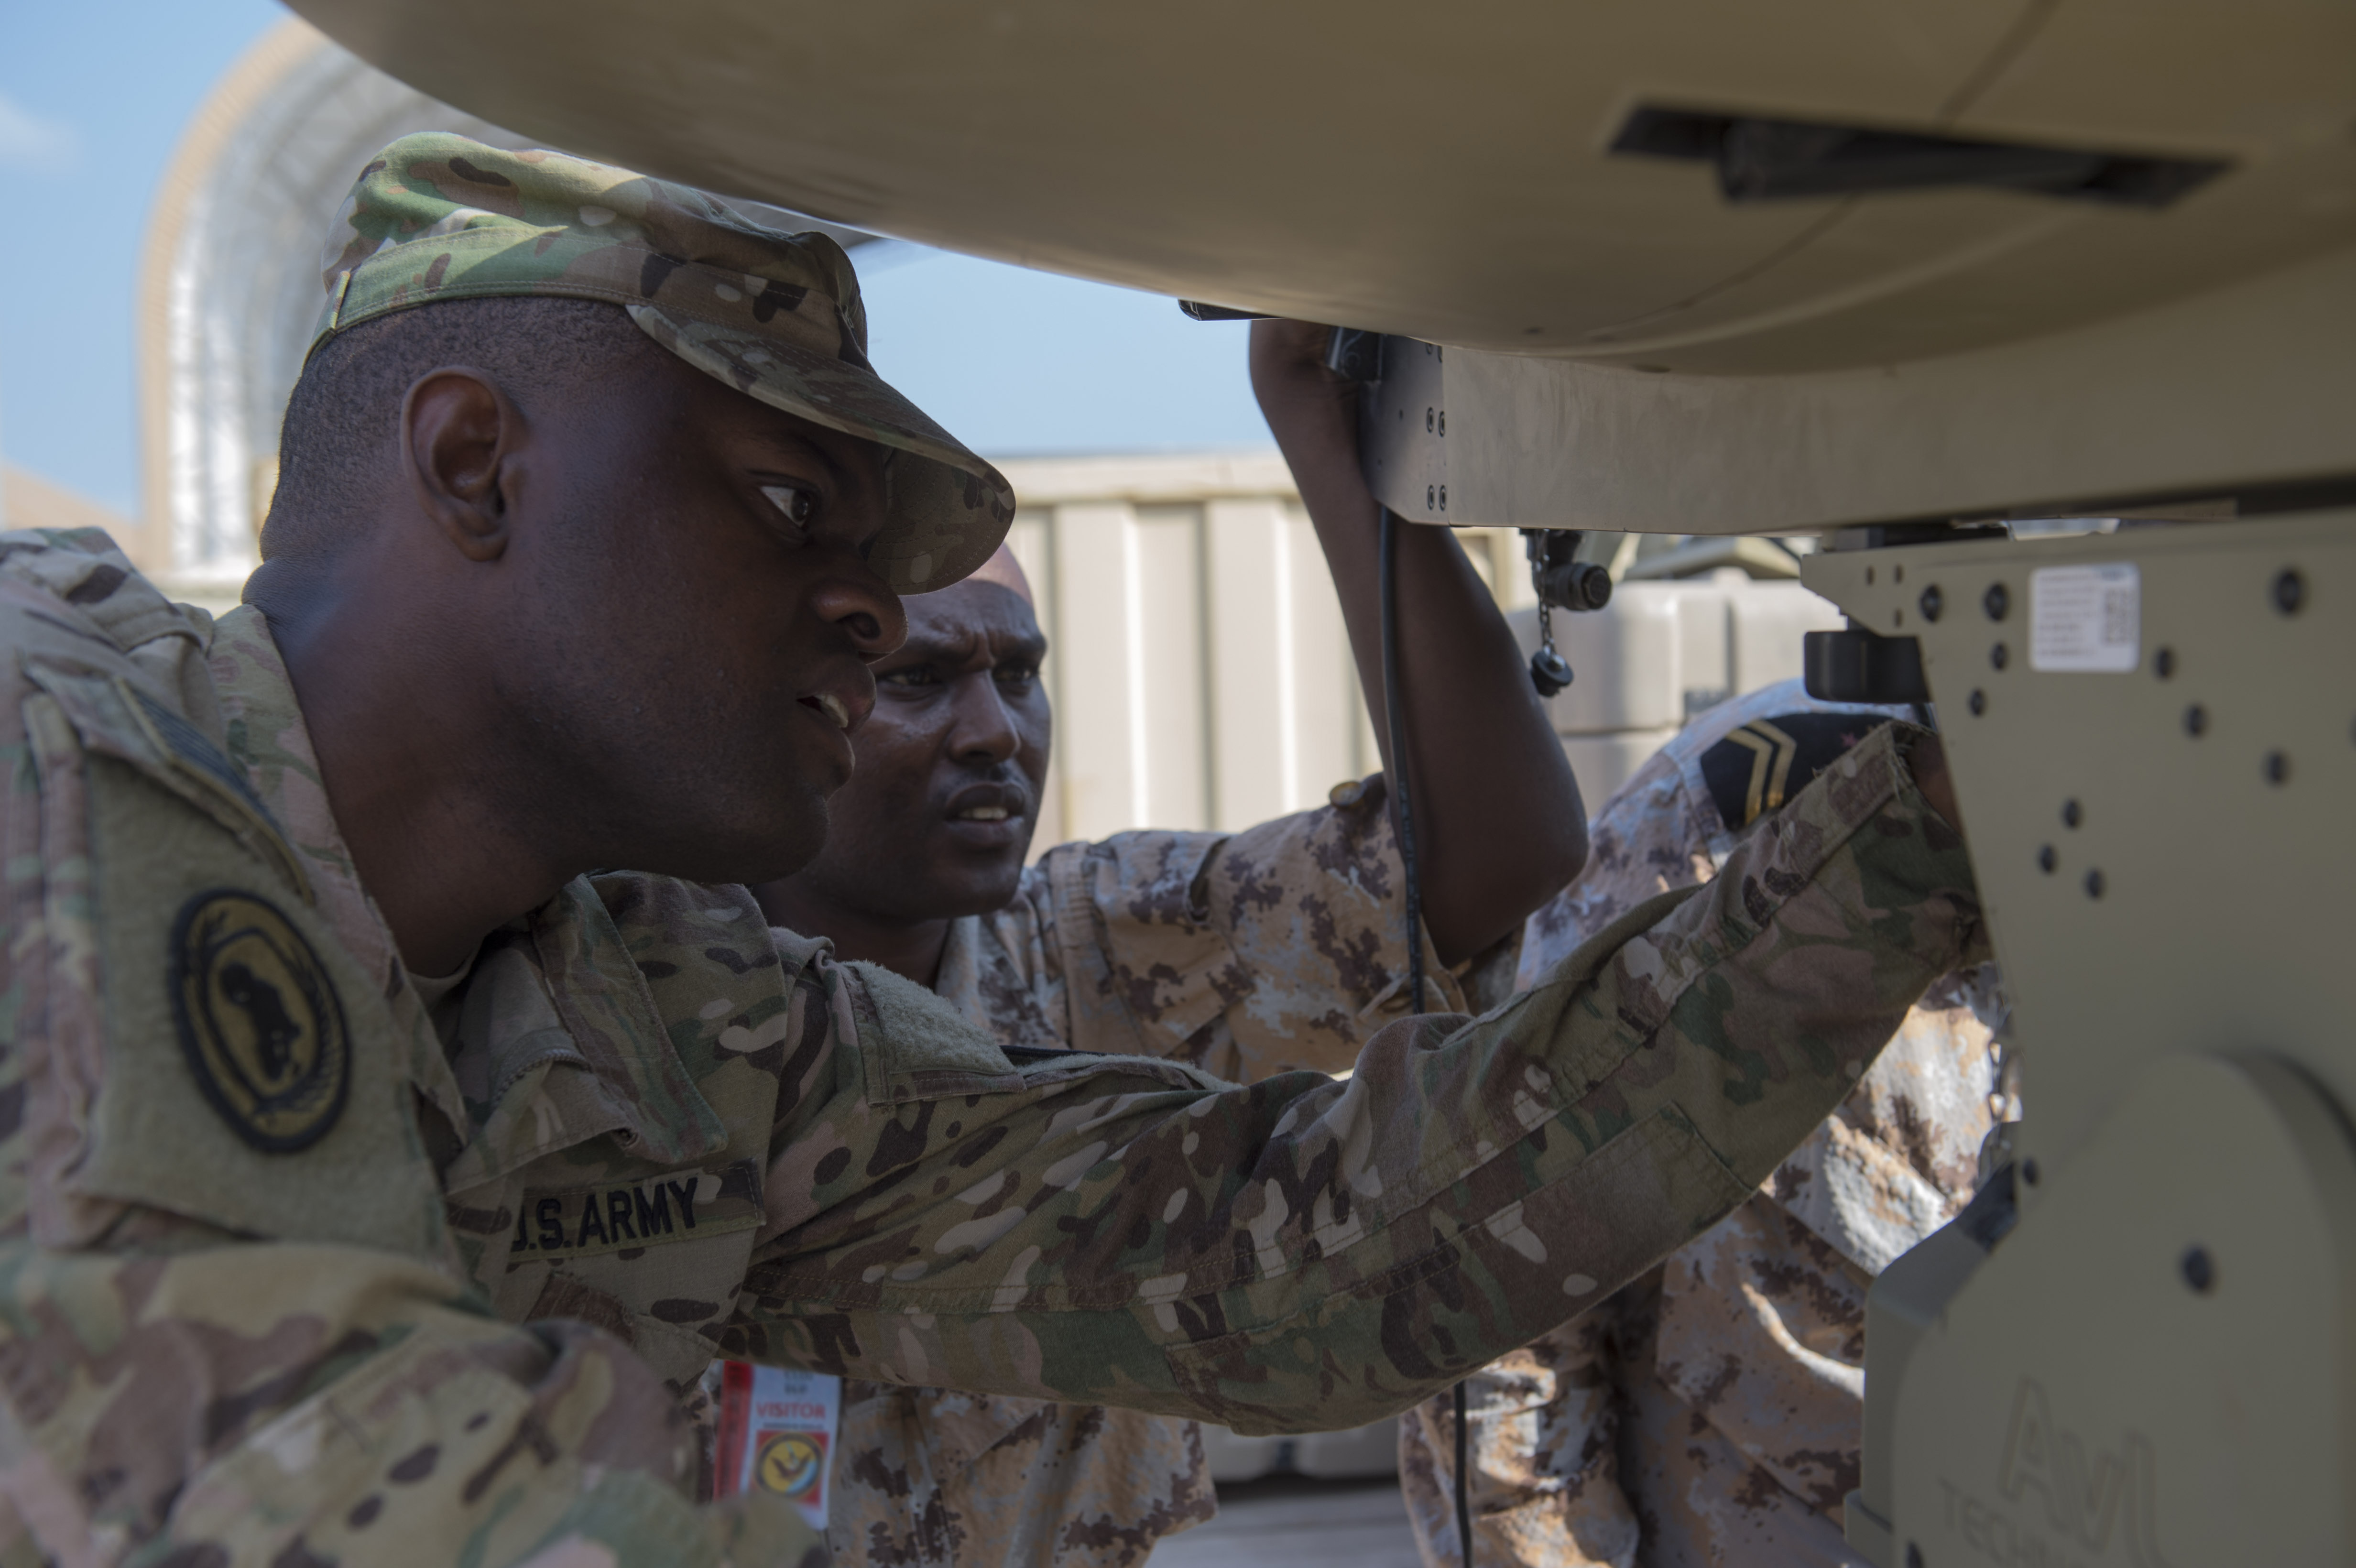 U.S. Army Spc. William Reed, a multisystem transmission operator and maintainer assigned to the Combined Joint Task Force - Horn of Africa (CJTF-HOA) Communications Directorate, helps a service member of the Djibouti Armed Forces (FAD) set up an antenna during a military-to-military exchange course at Camp Lemonnier, Djibouti, Jan. 8, 2018. Throughout a two-week period, communications experts advised Djiboutian service members on how to set up, operate, maintain, and troubleshoot network equipment to increase communication capabilities between African Union Mission in Somalia forces. (U.S. Air Force photo illustration by Staff Sgt. Timothy Moore)